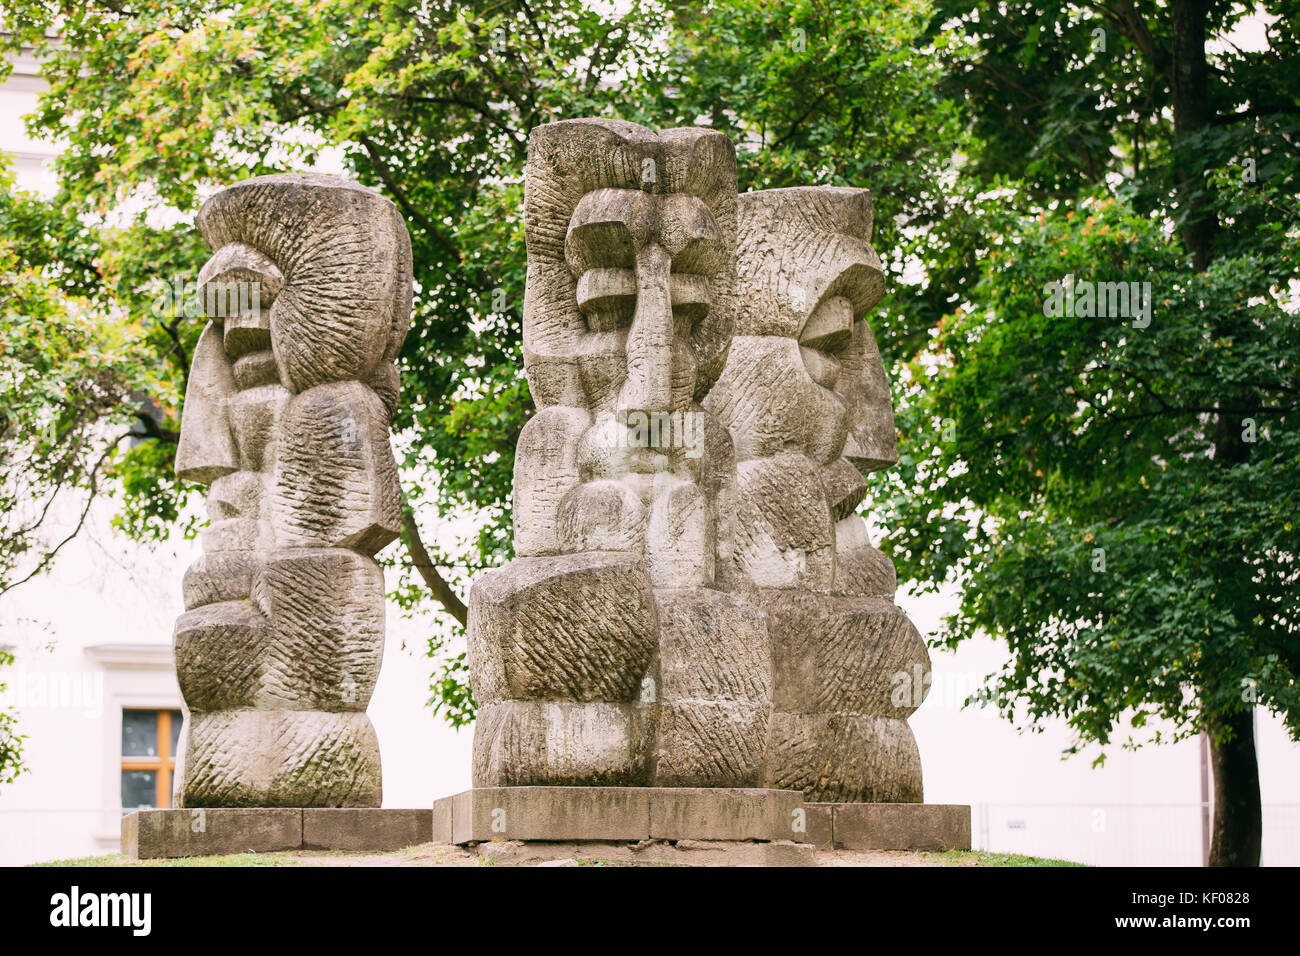 Vilnius, Lithuania. Symbols Of Deities From Paganism Stone Cult Image, Idols Near National Museum Of Lithuania. - Stock Image